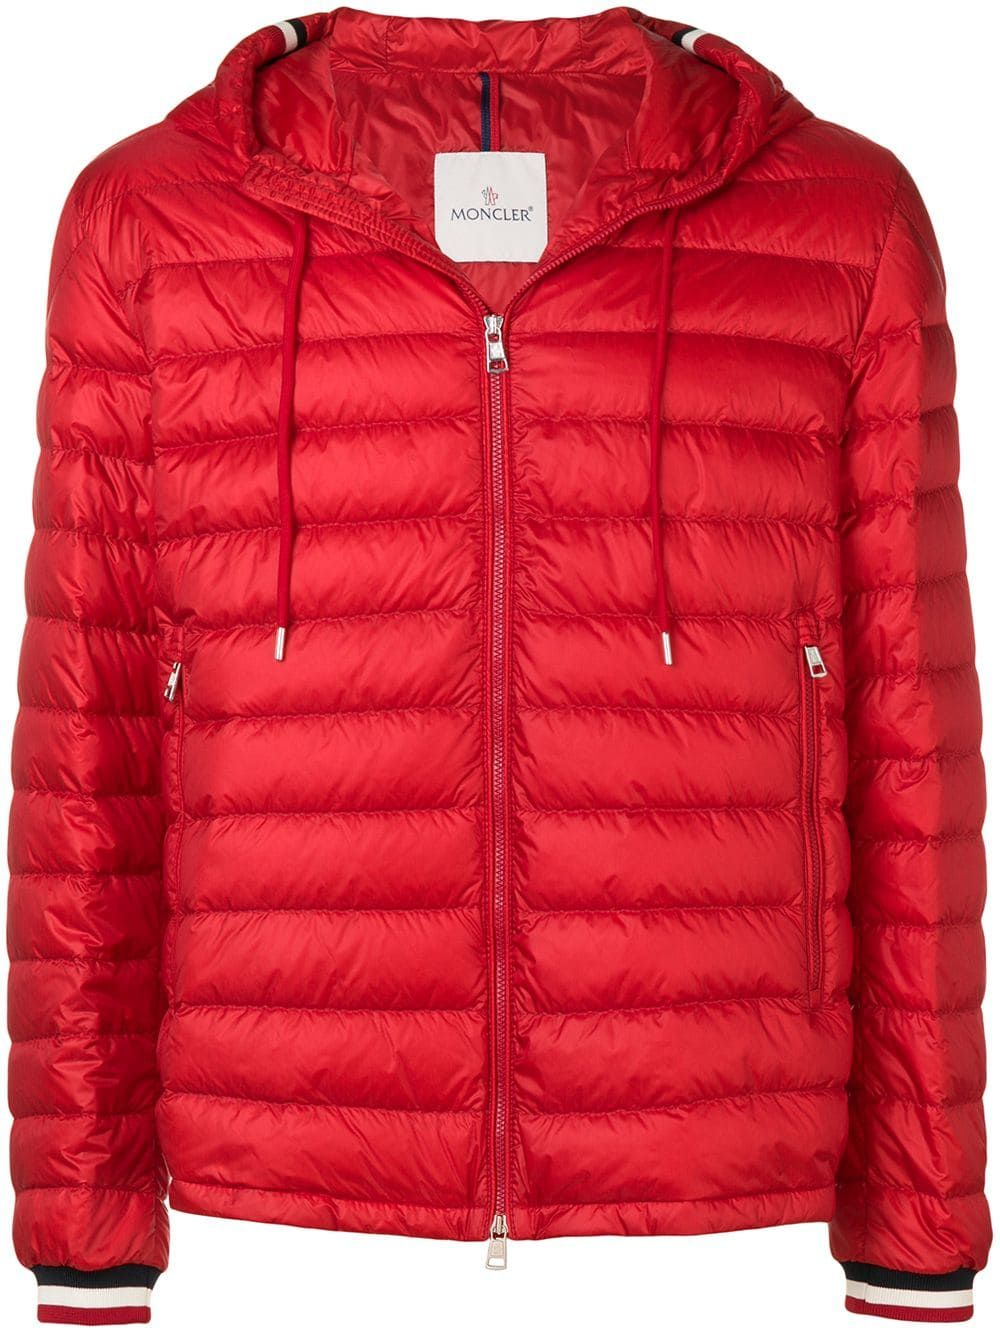 cbdc68fc1231 MONCLER MONCLER HOODED DOWN JACKET - RED.  moncler  cloth